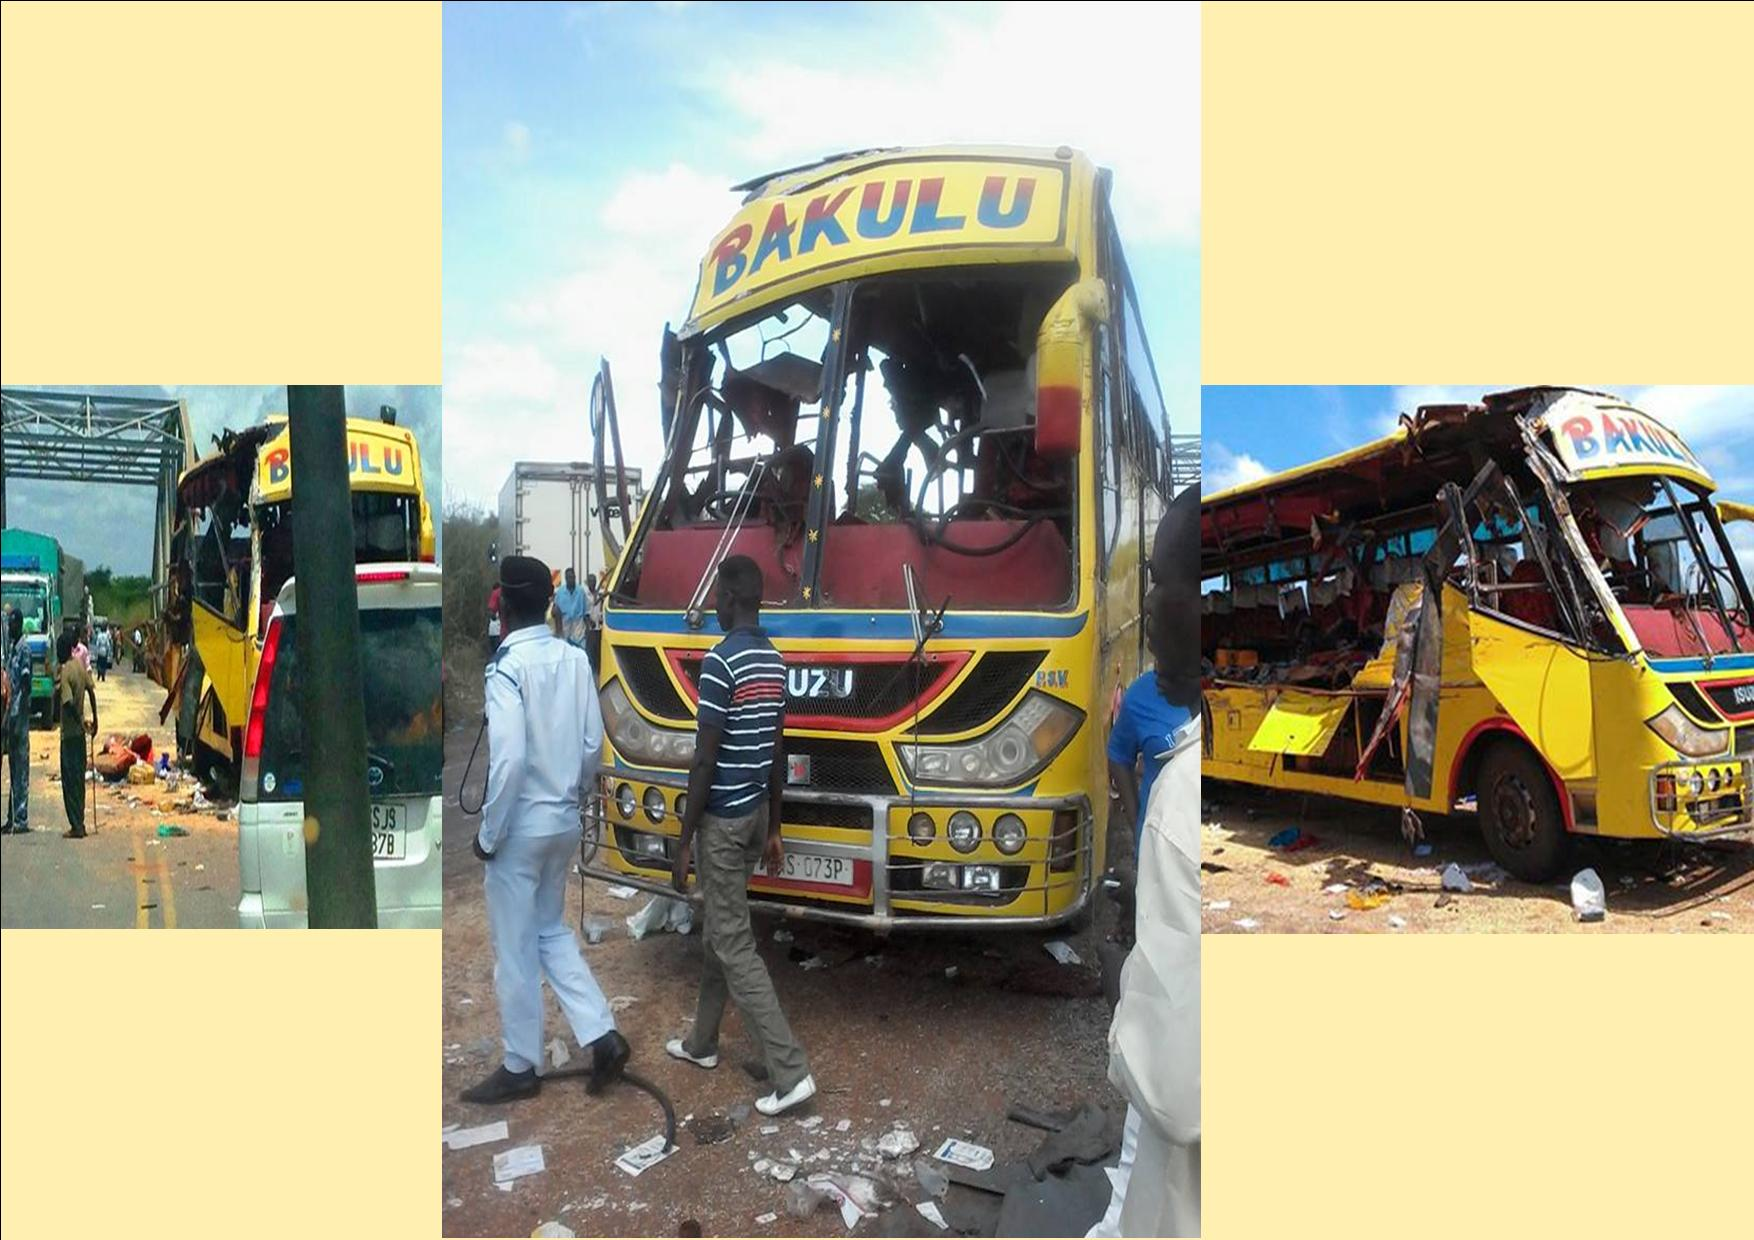 Deadly Bakulu Buses change name after ban from South Sudan